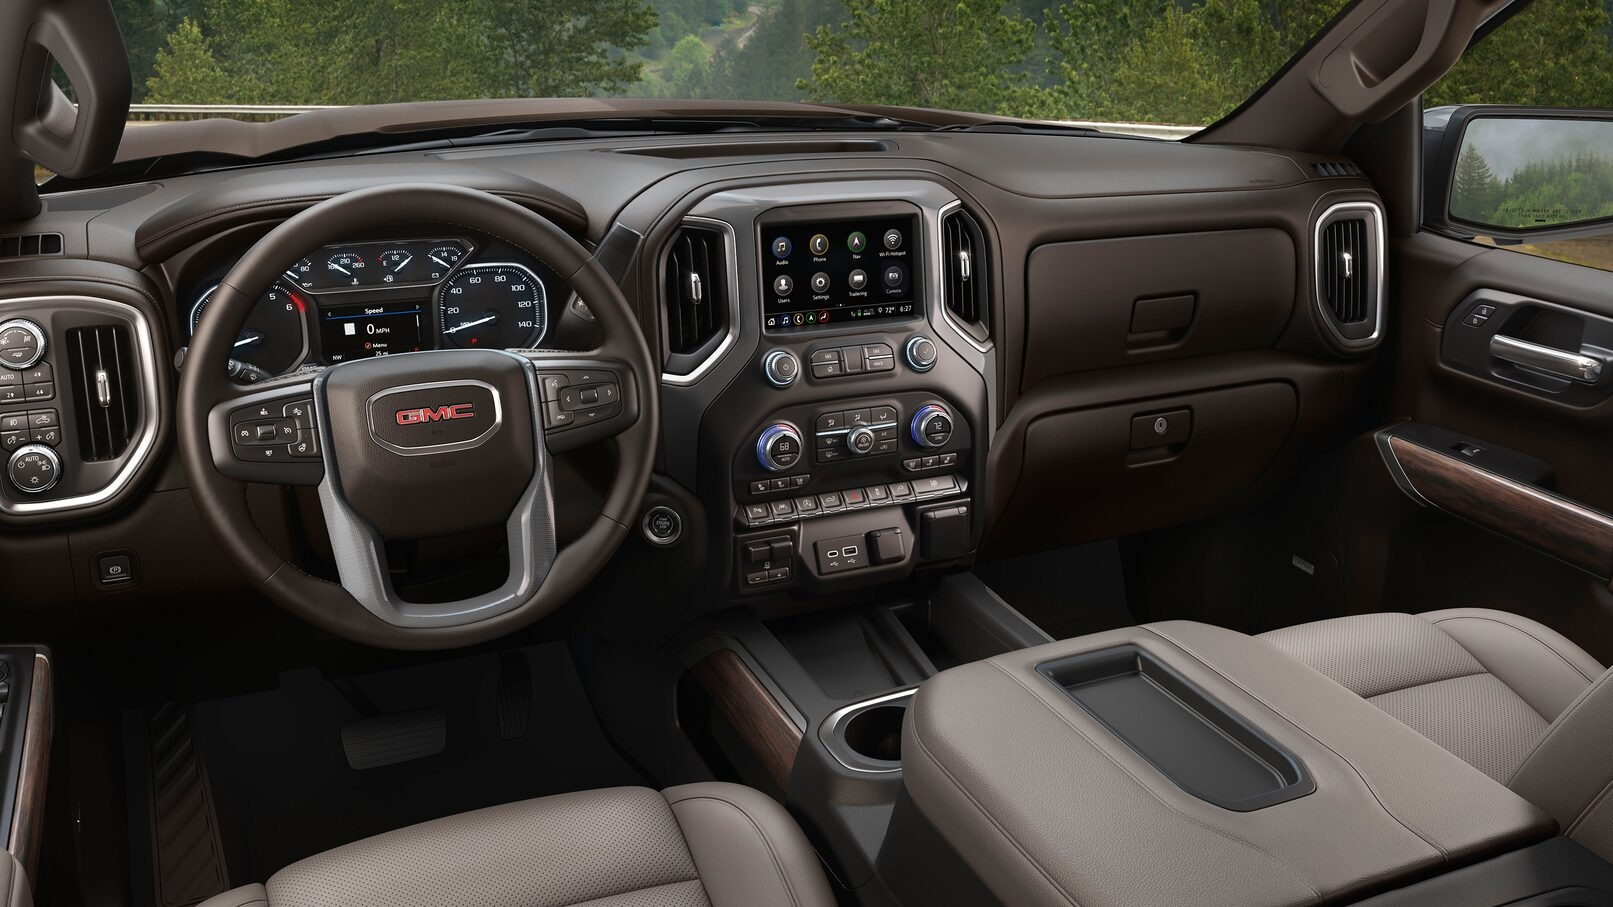 2020 GMC Sierra Interior Dash